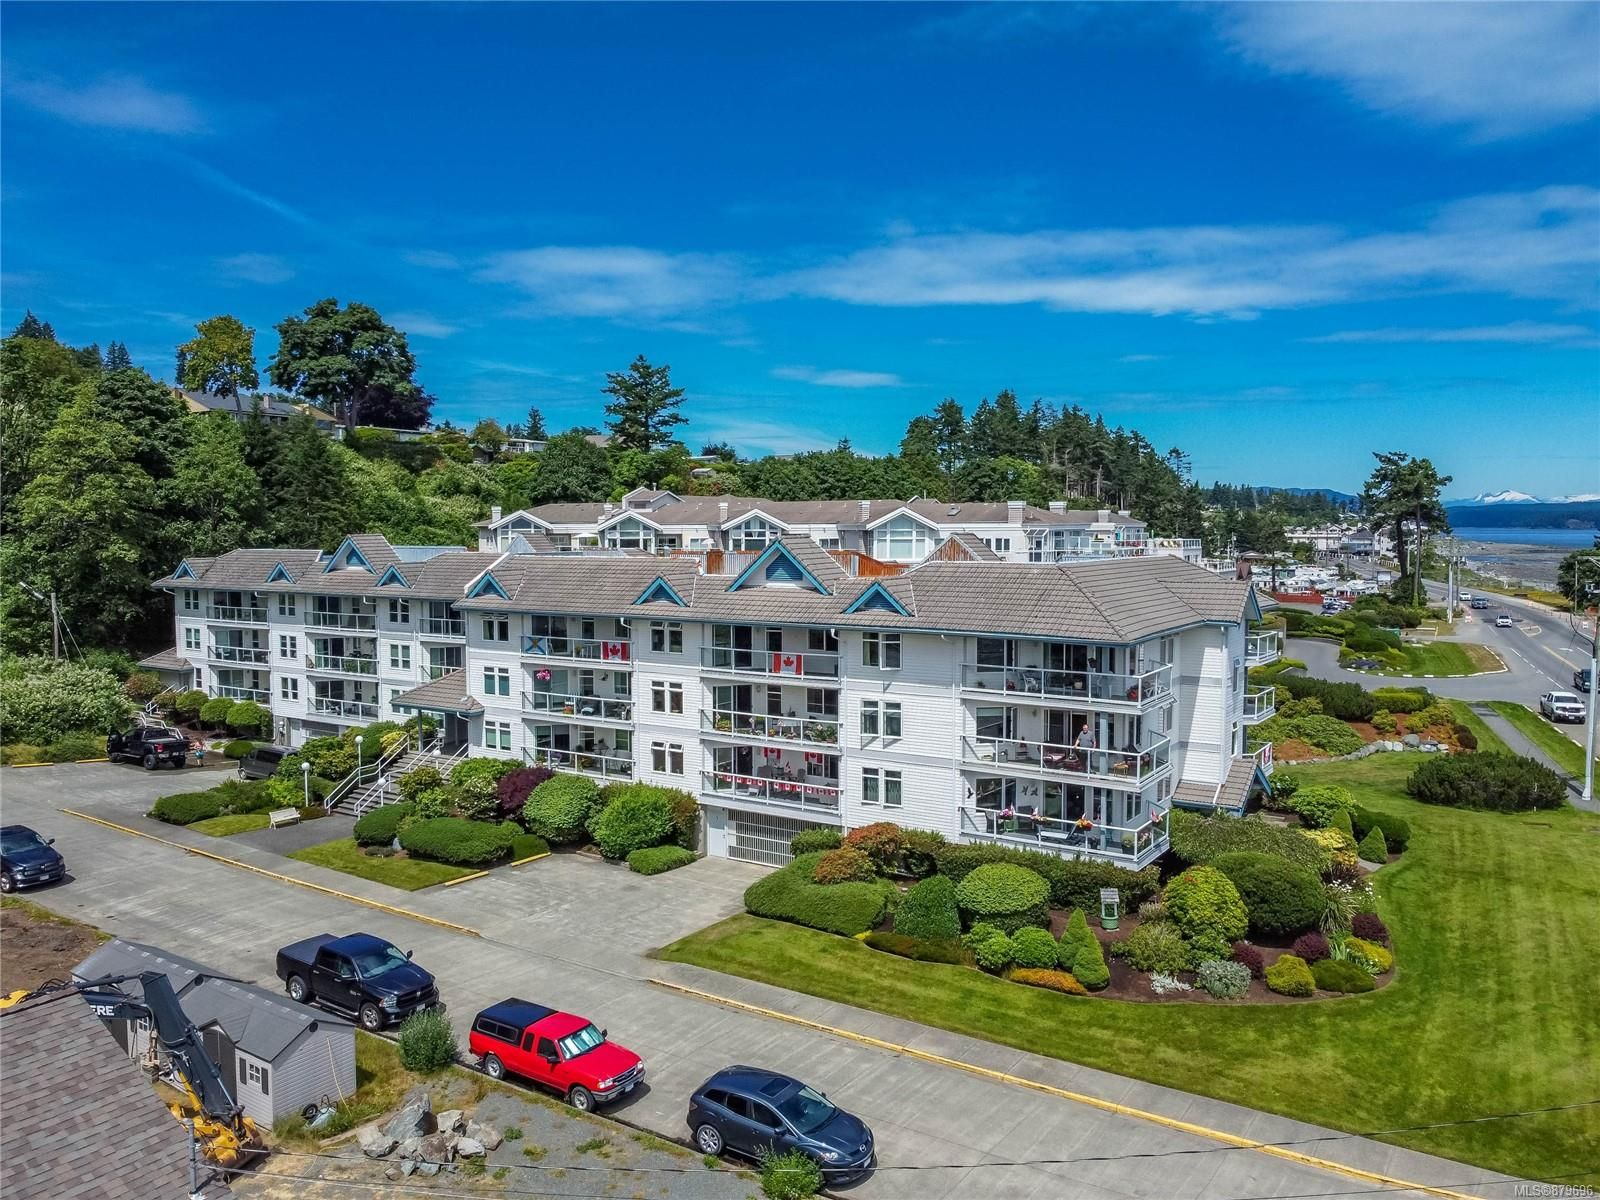 Photo 31: Photos: 219 390 S Island Hwy in : CR Campbell River West Condo for sale (Campbell River)  : MLS®# 879696